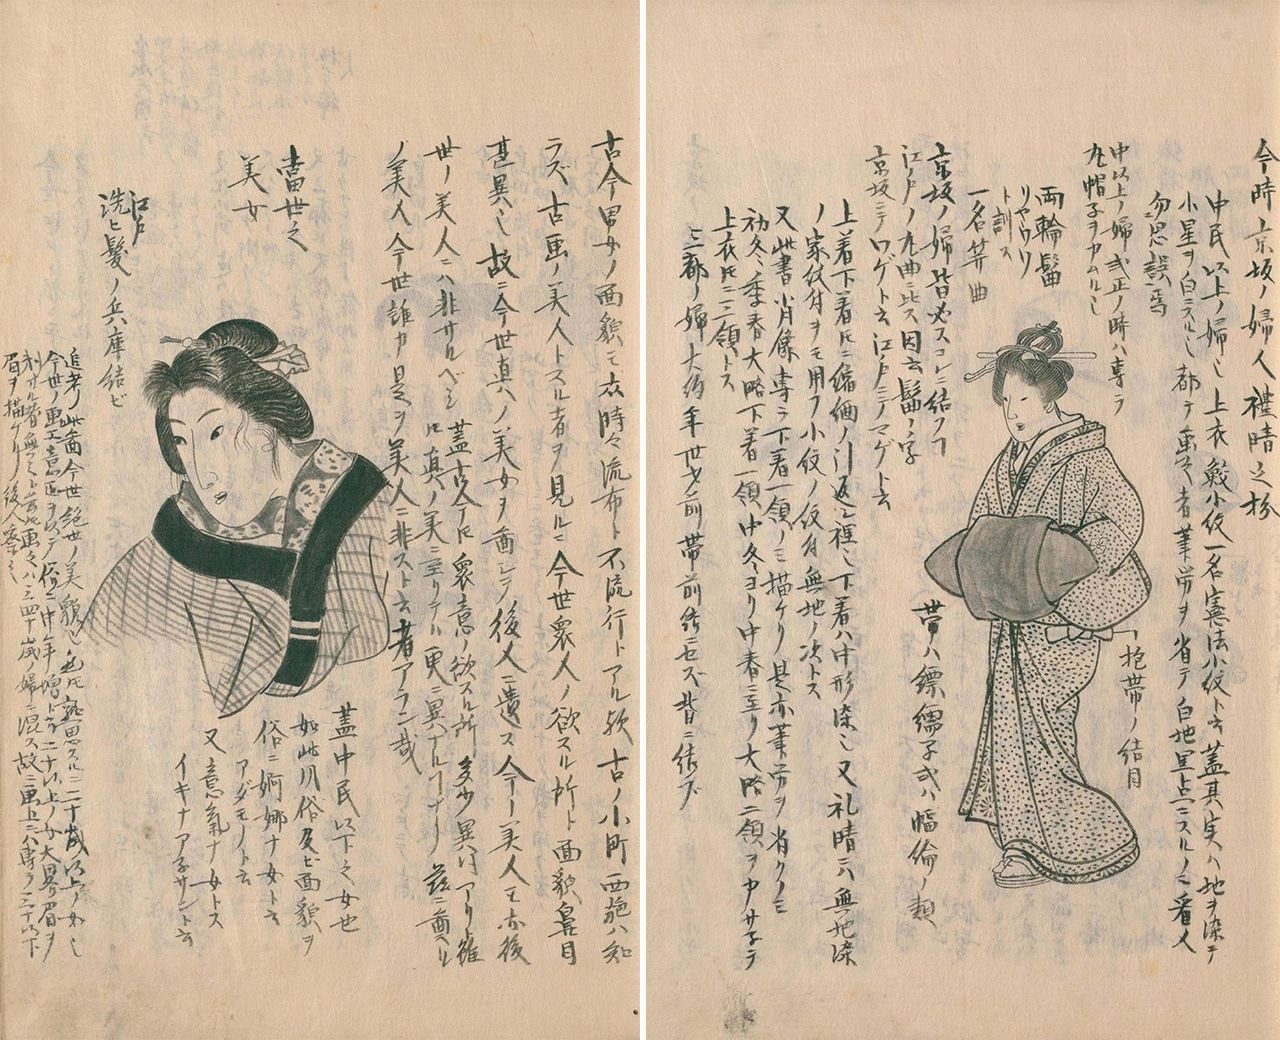 Comparisons of hairstyles and accessories of a woman from Edo (left) and Kyoto.